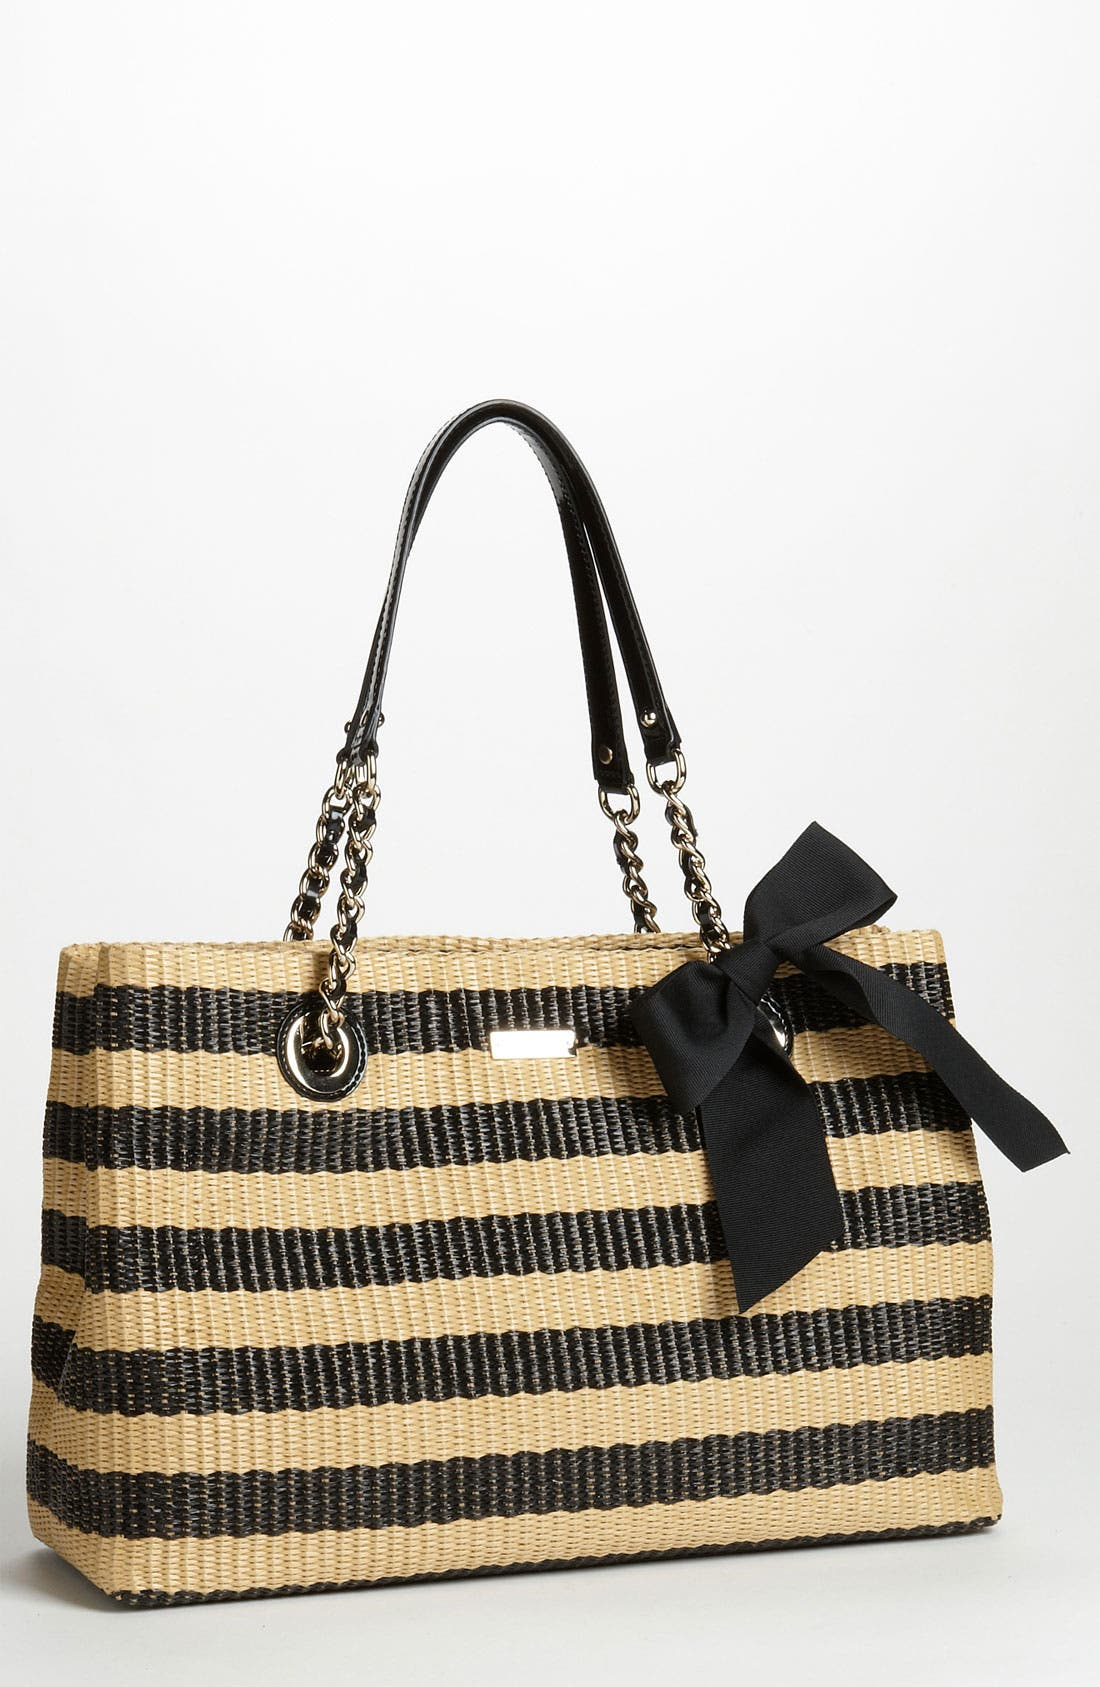 Main Image - kate spade new york 'pacific heights - zippered helena' tote (Nordstrom Exclusive)